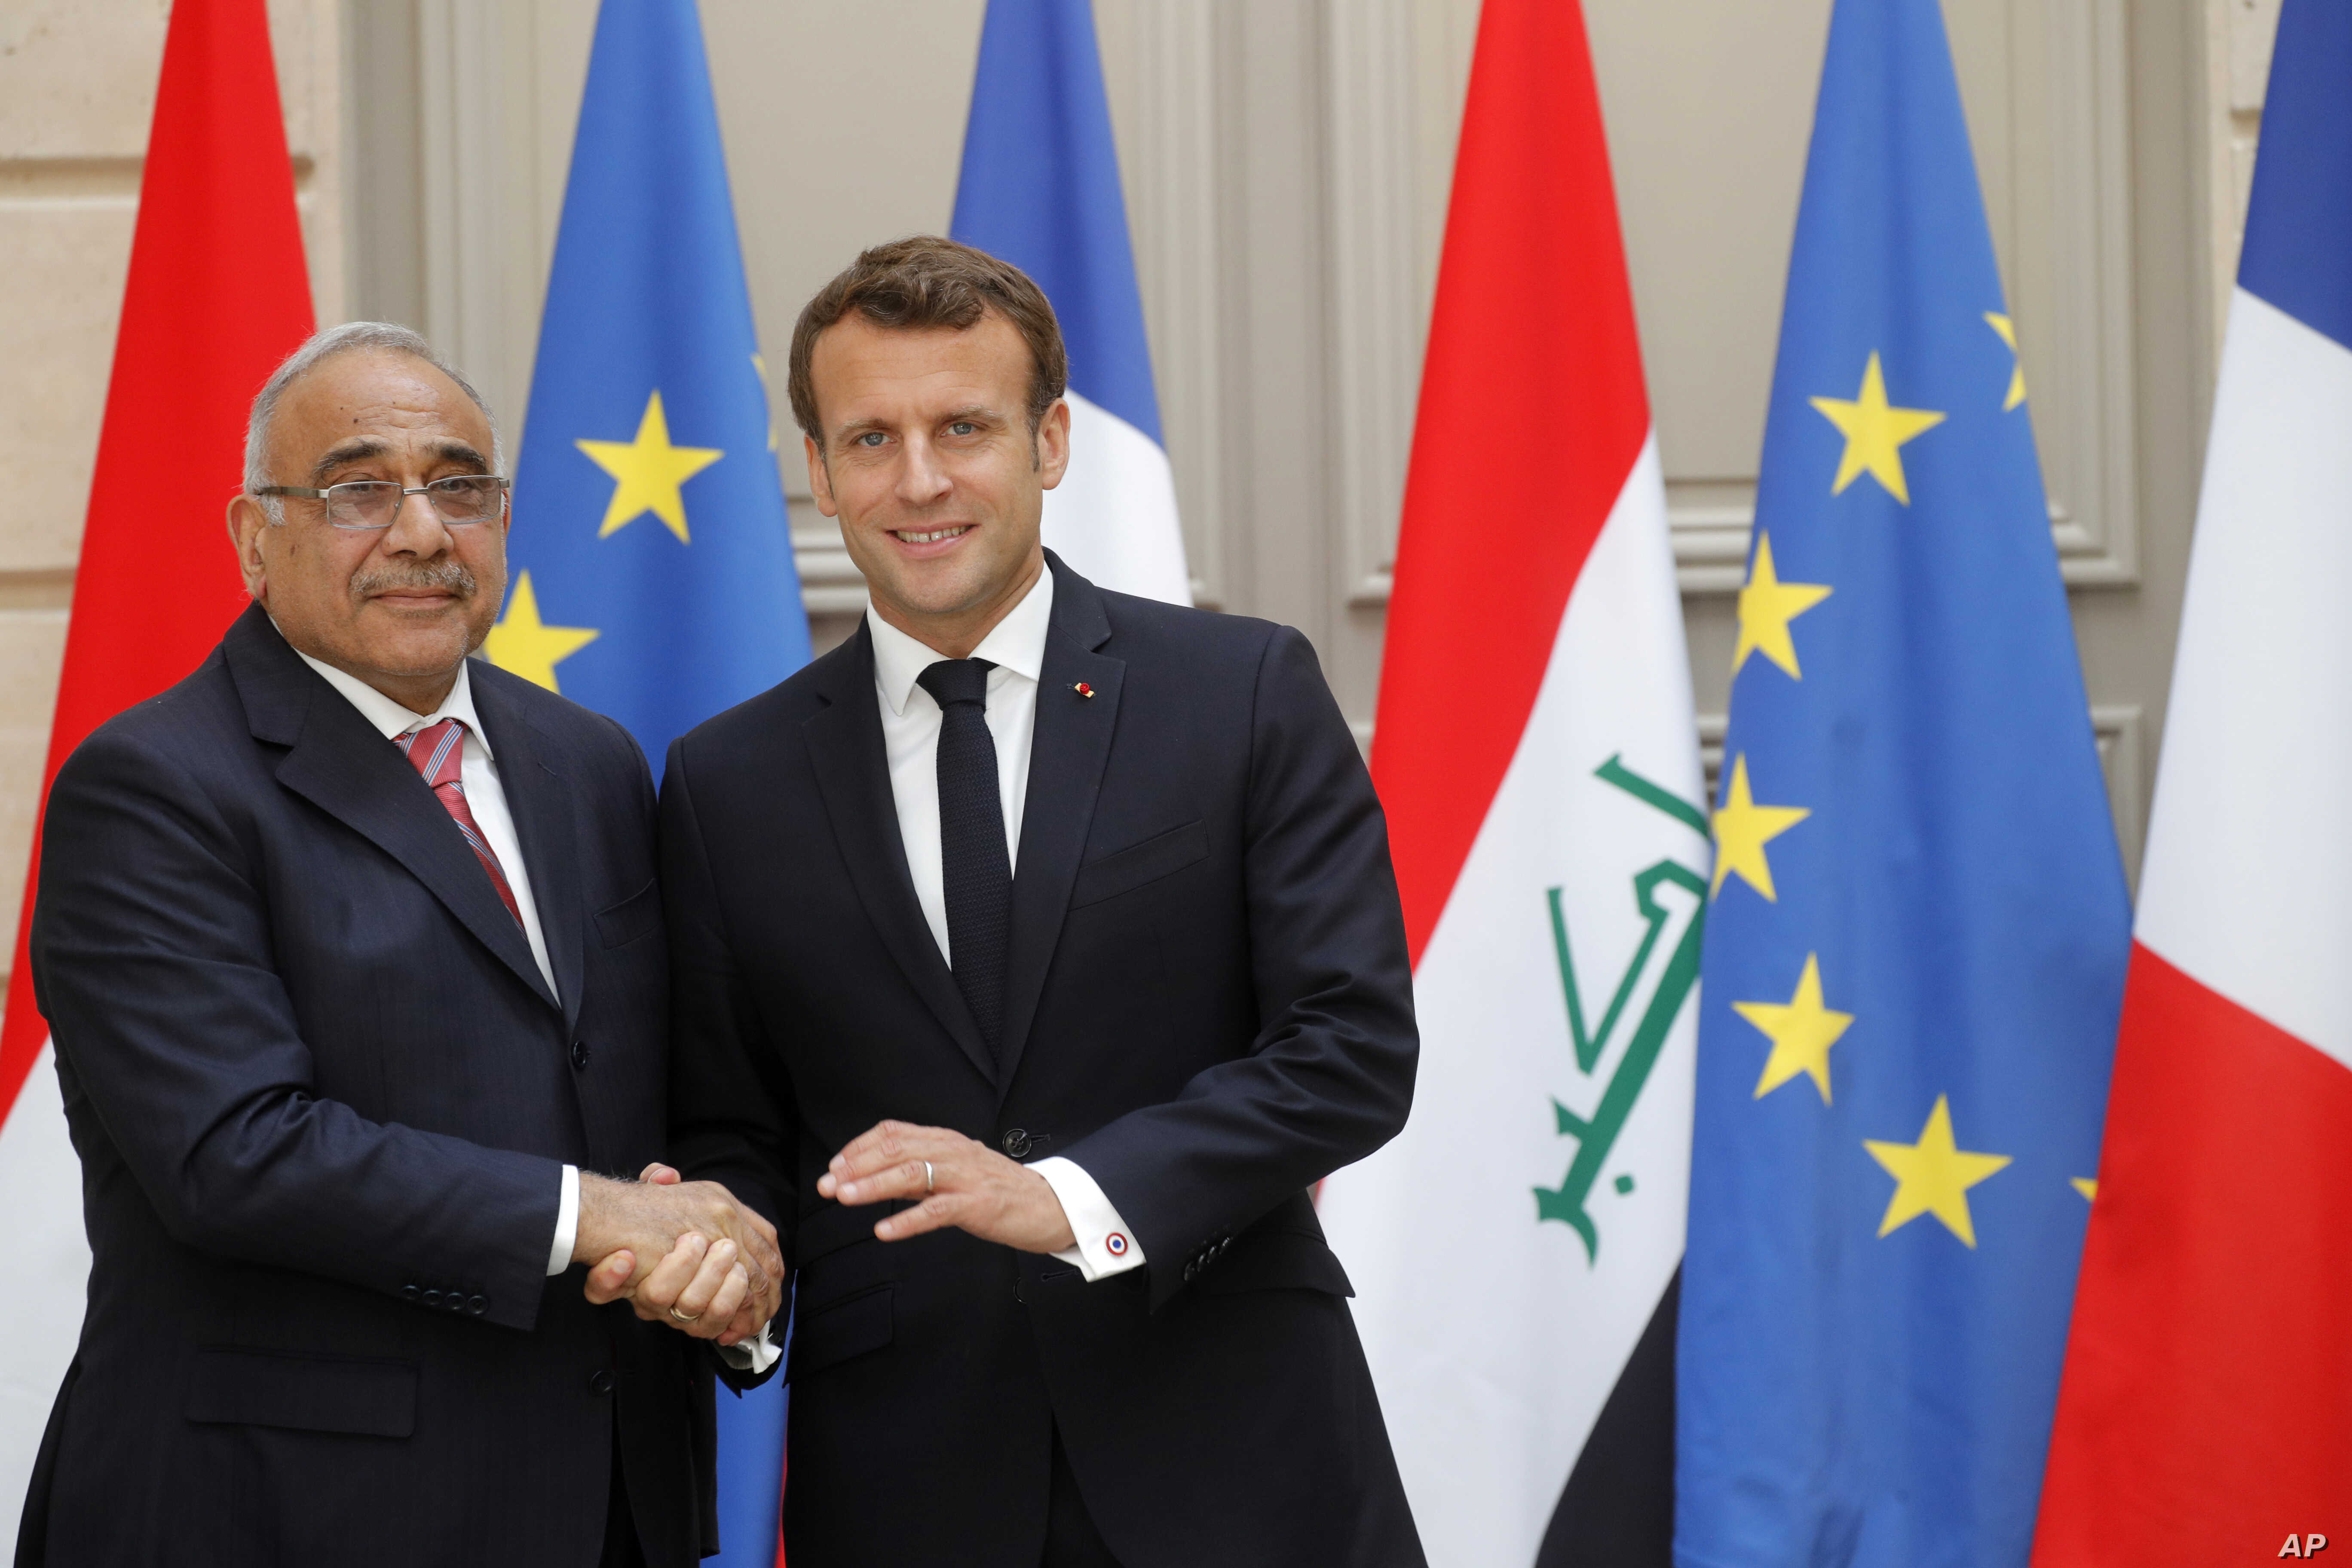 FILE - French President Emmanuel Macron skakes hands with Iraqi Prime Minister Adel Abdul-Mahdi after a joint statement at the Elysee Palace in Paris, France, May 3, 2019.